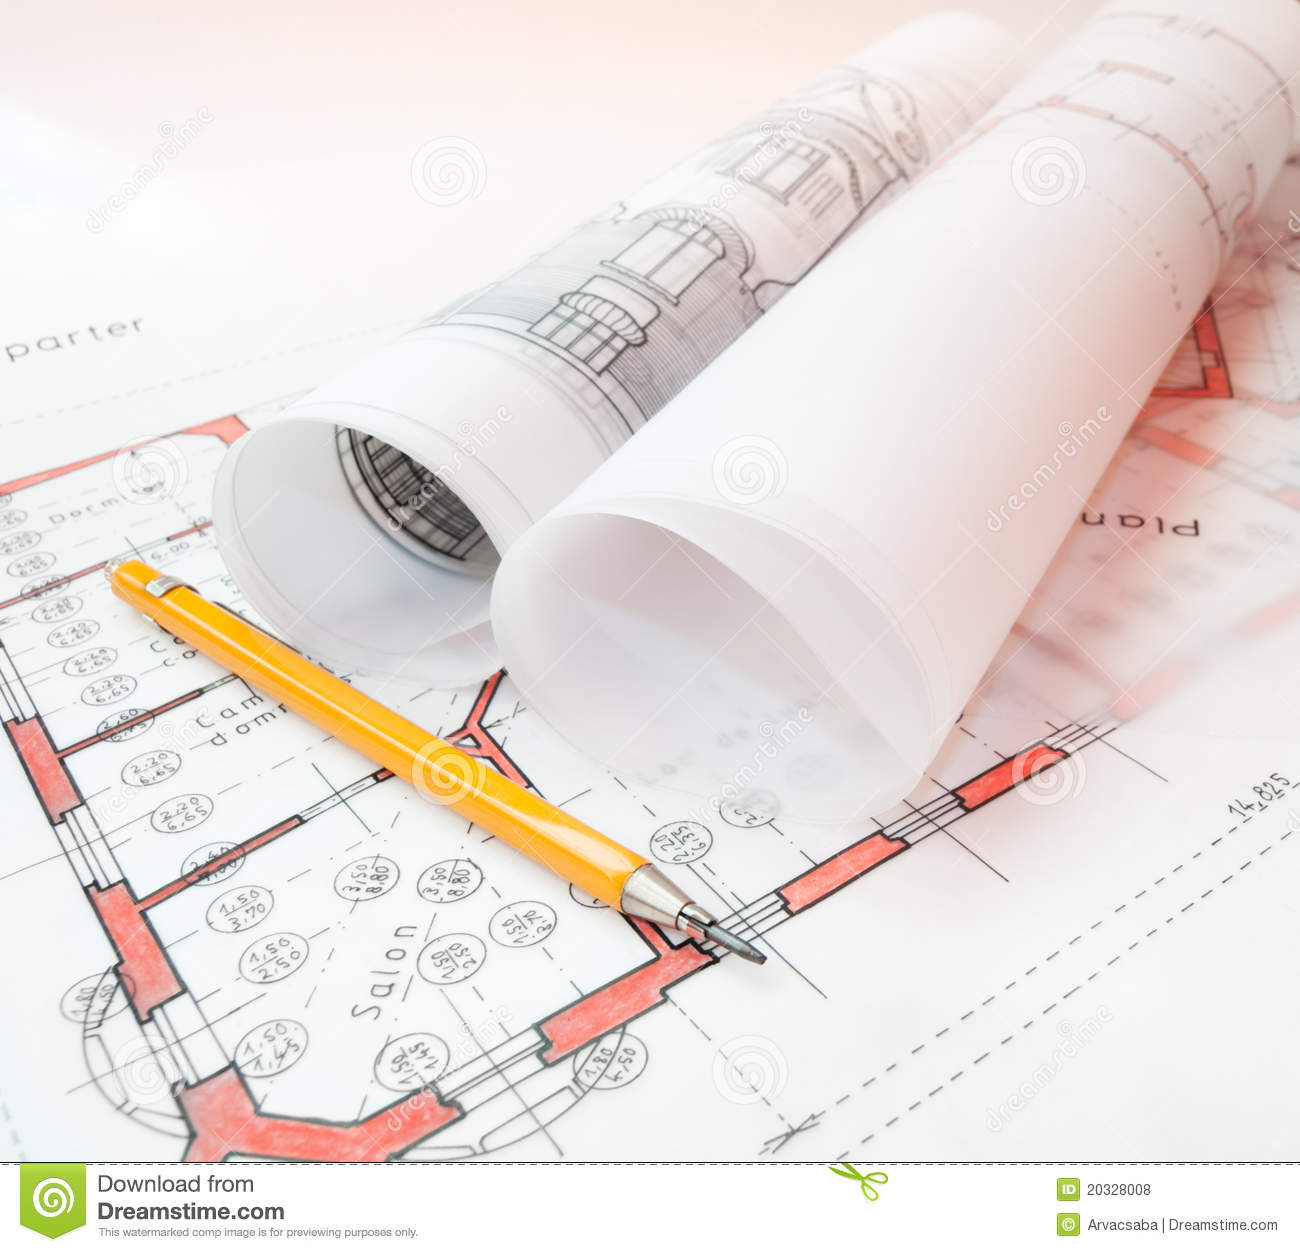 Architecture plans royalty free stock photos image 20328008 for Architecture plan